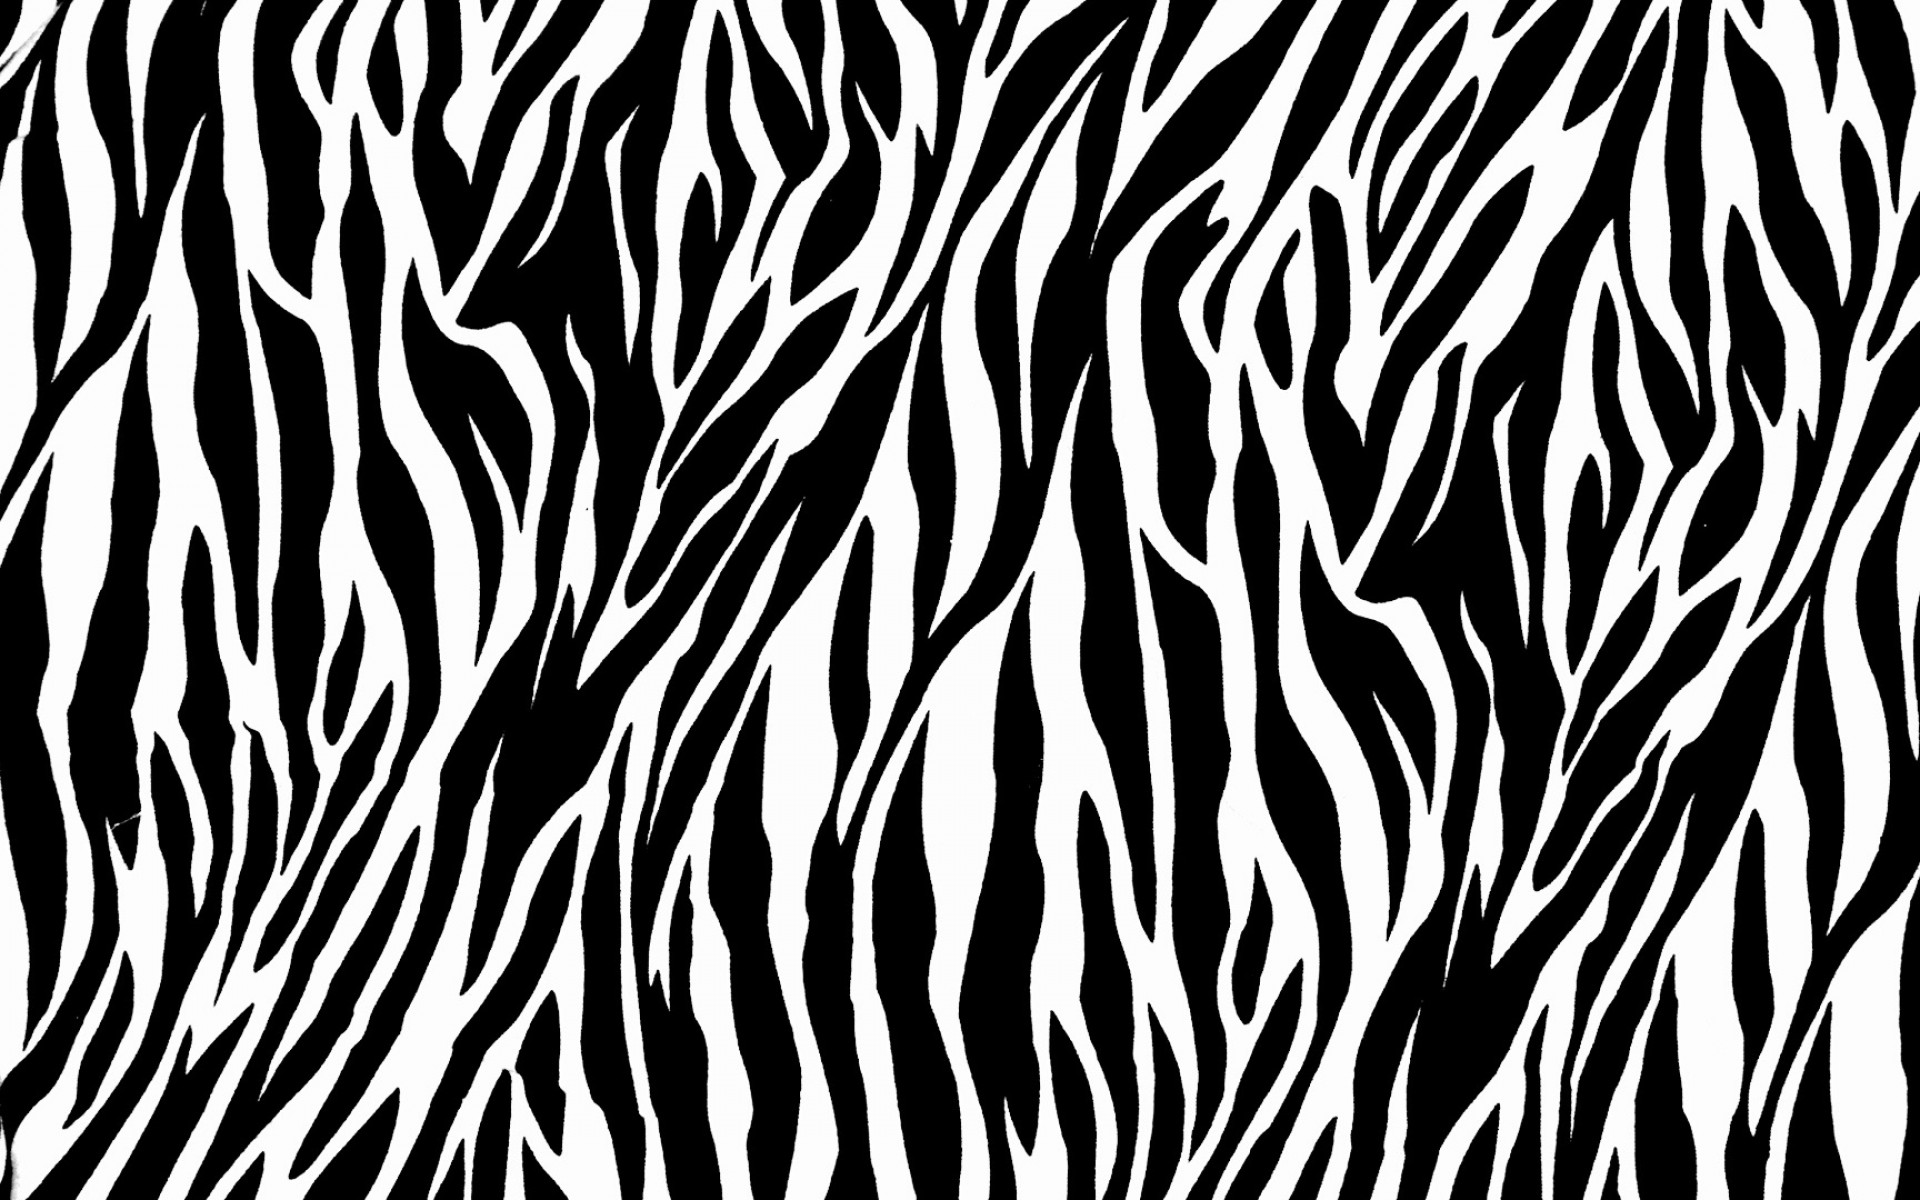 Cool Black And White Posters Zebra Print Wallpaper Hd Pixelstalk Net